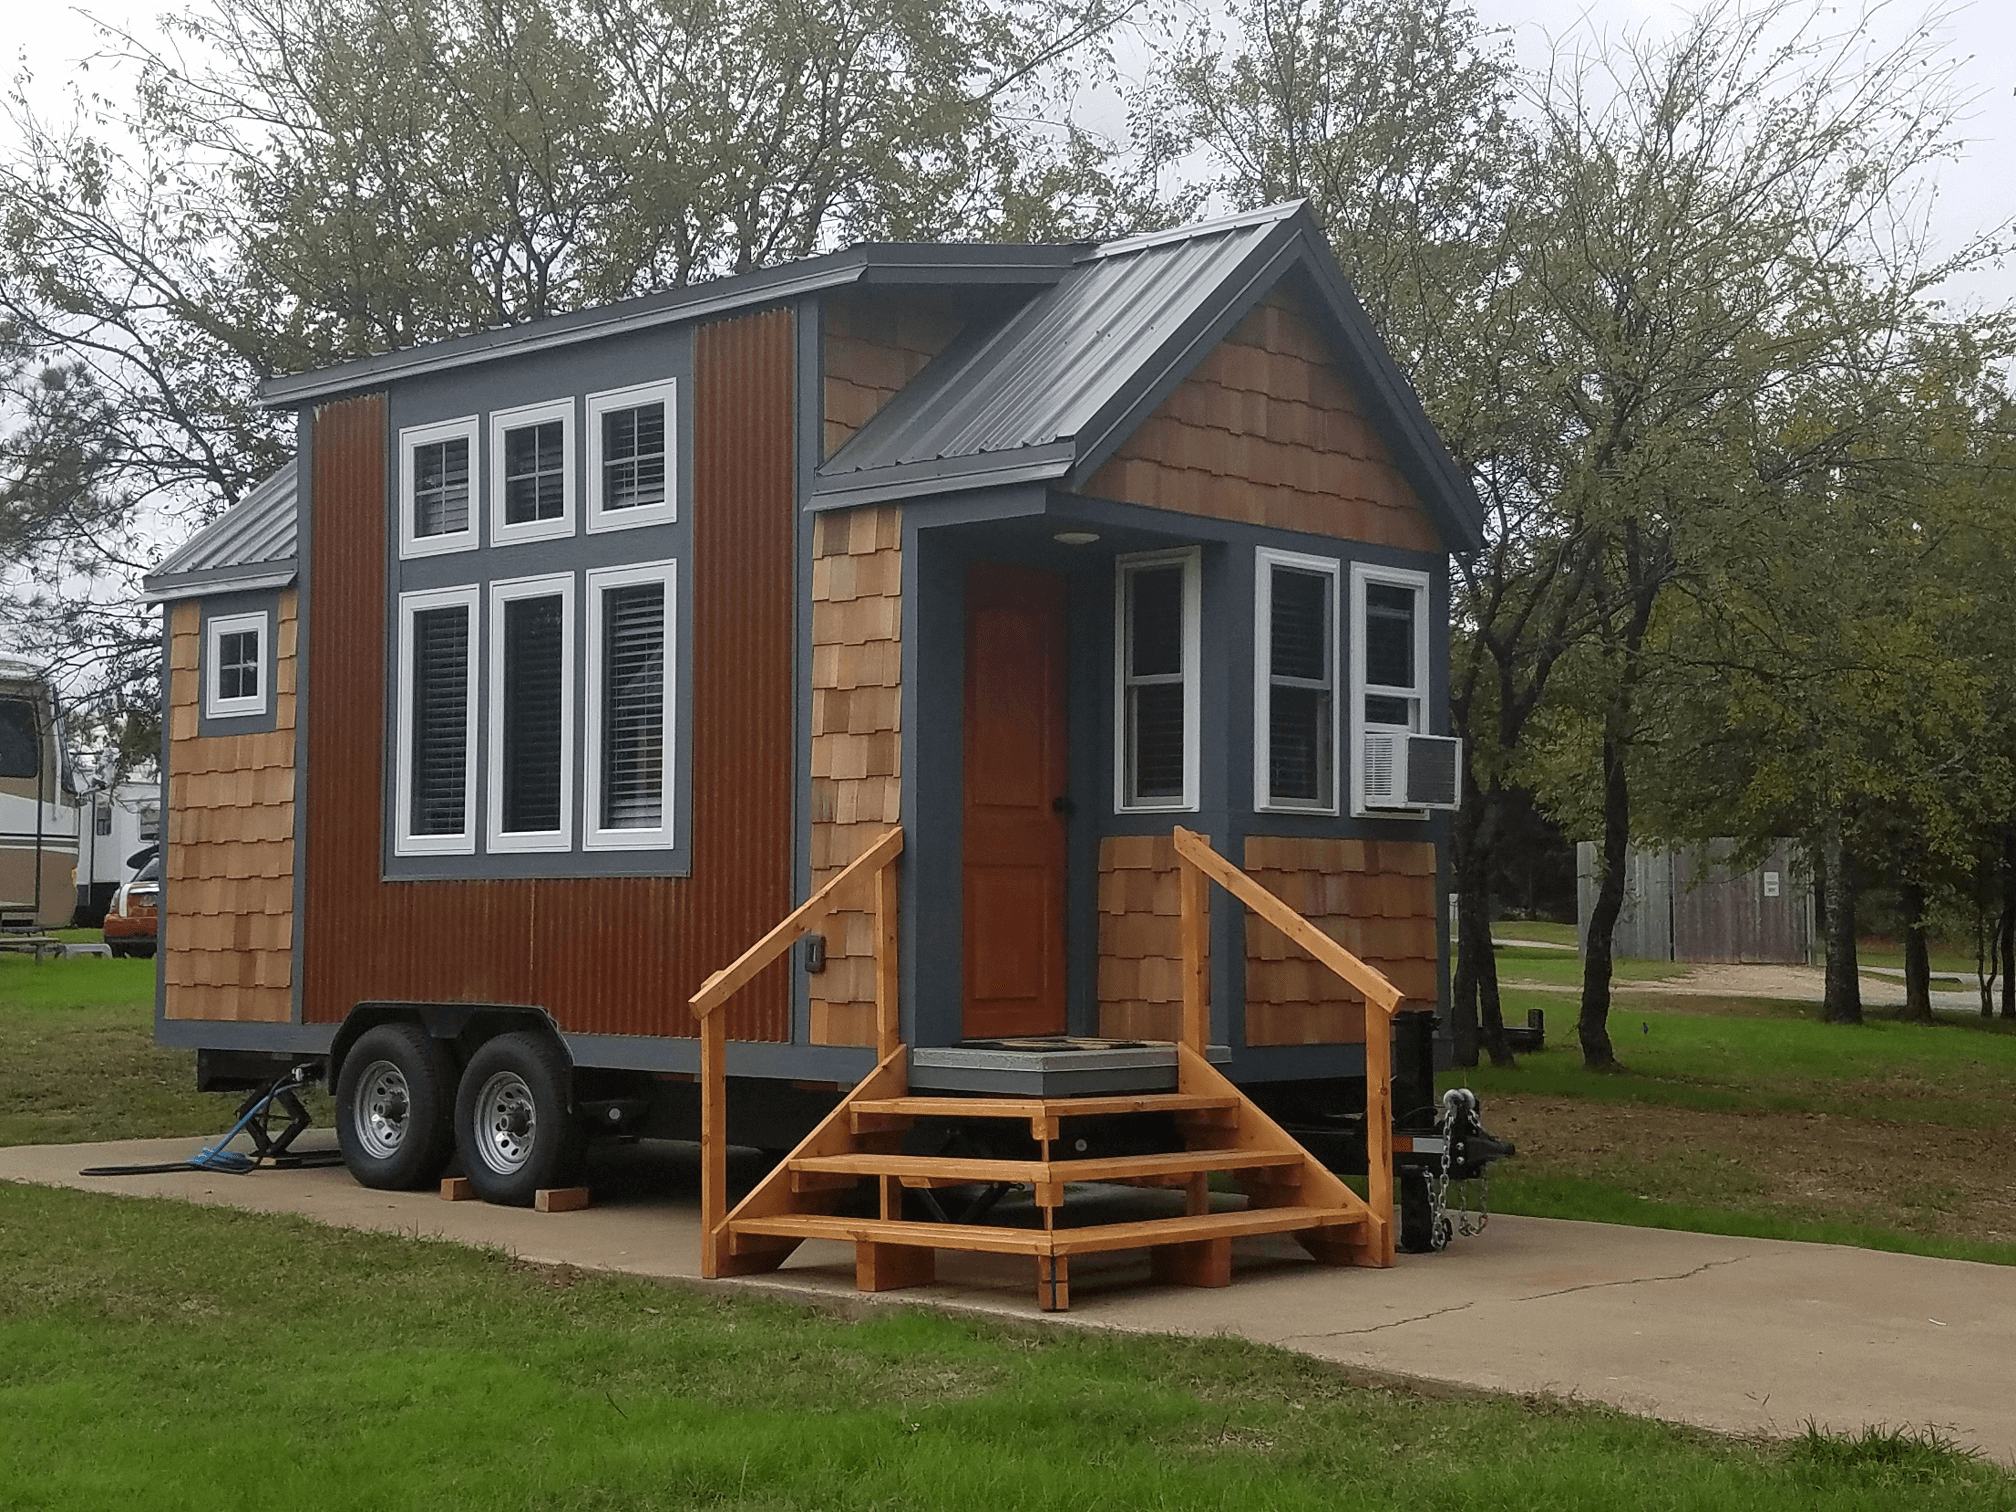 Farmhouse For Sale In Texas Tiny Houses For Rent In Texas Try First Before Buy Tiny Home Sale